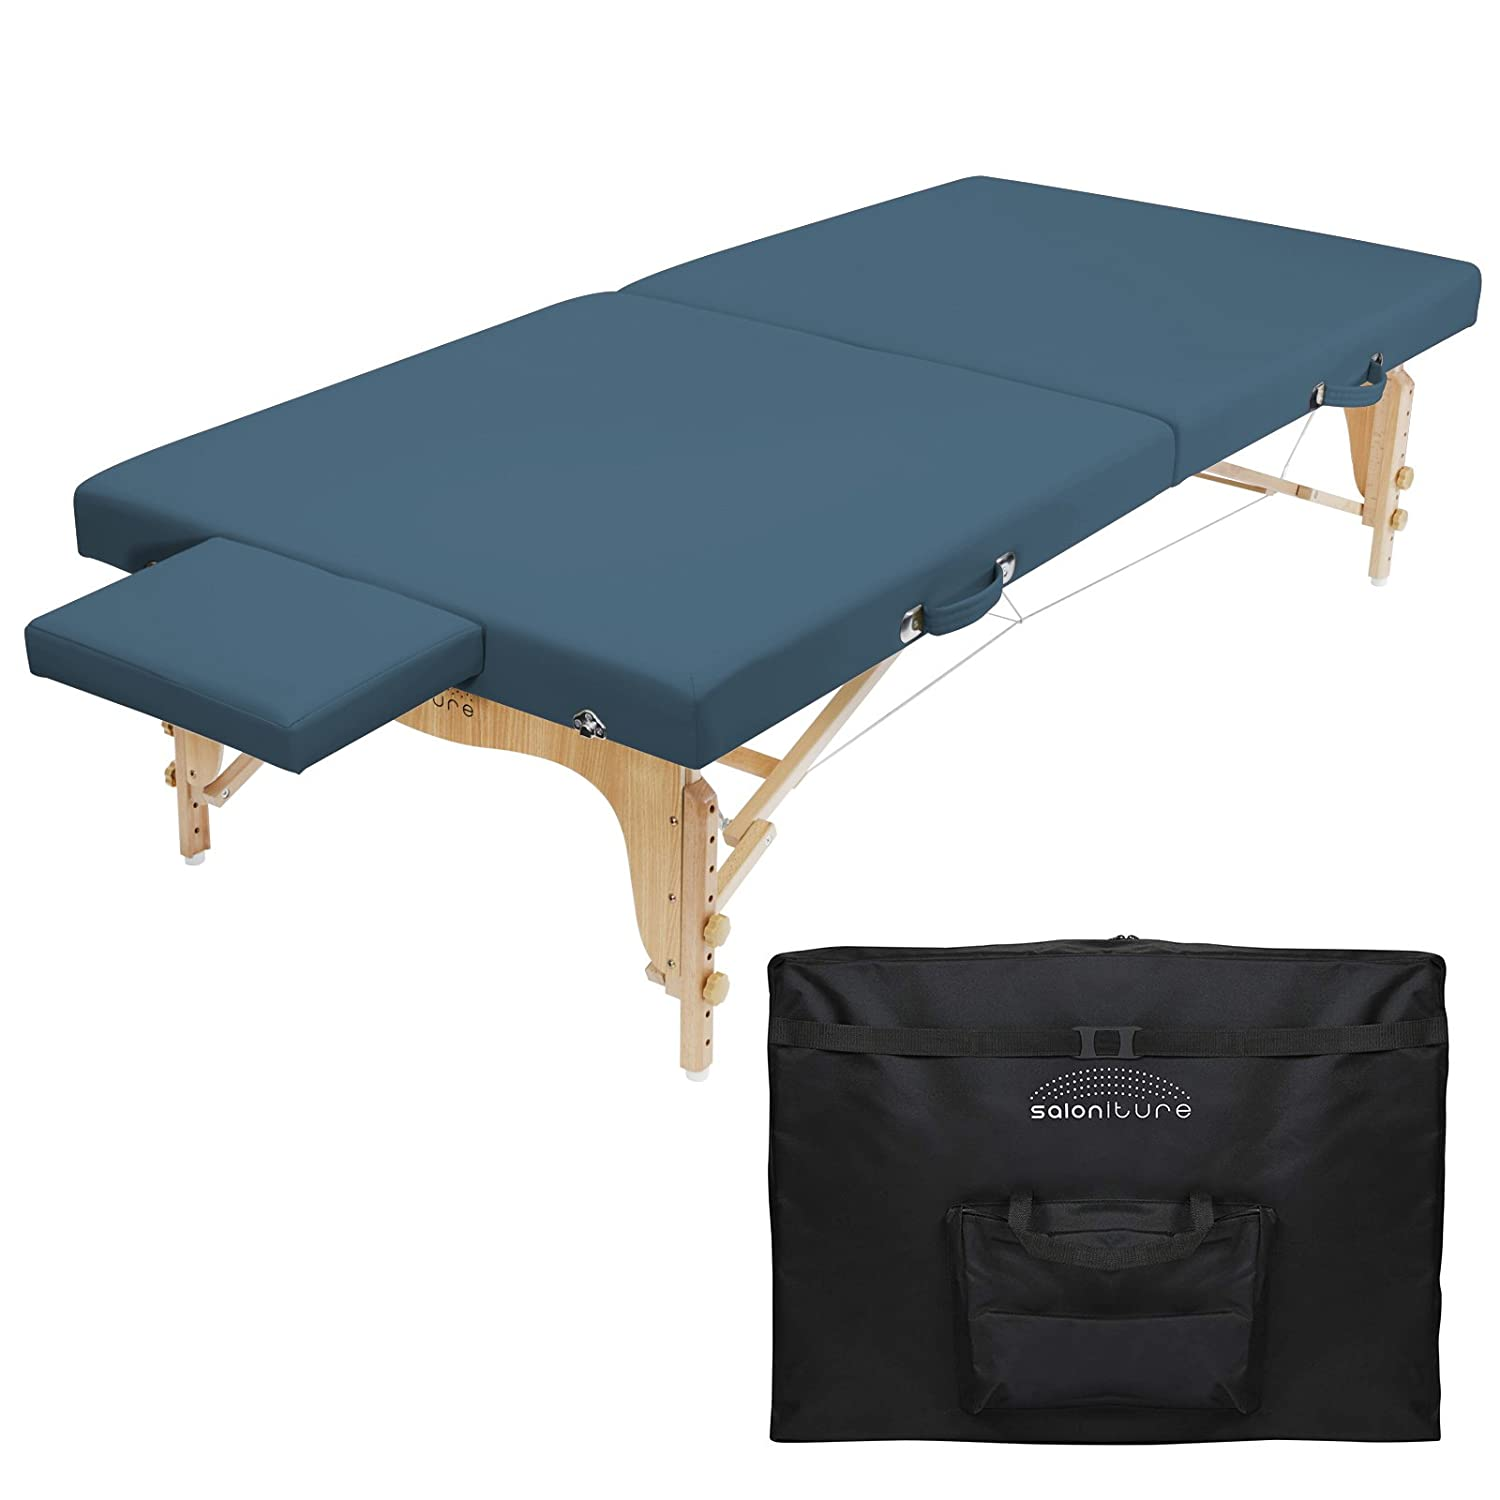 Saloniture Portable Folding Massage Table (Low to Ground Stretching Treatment Mat)